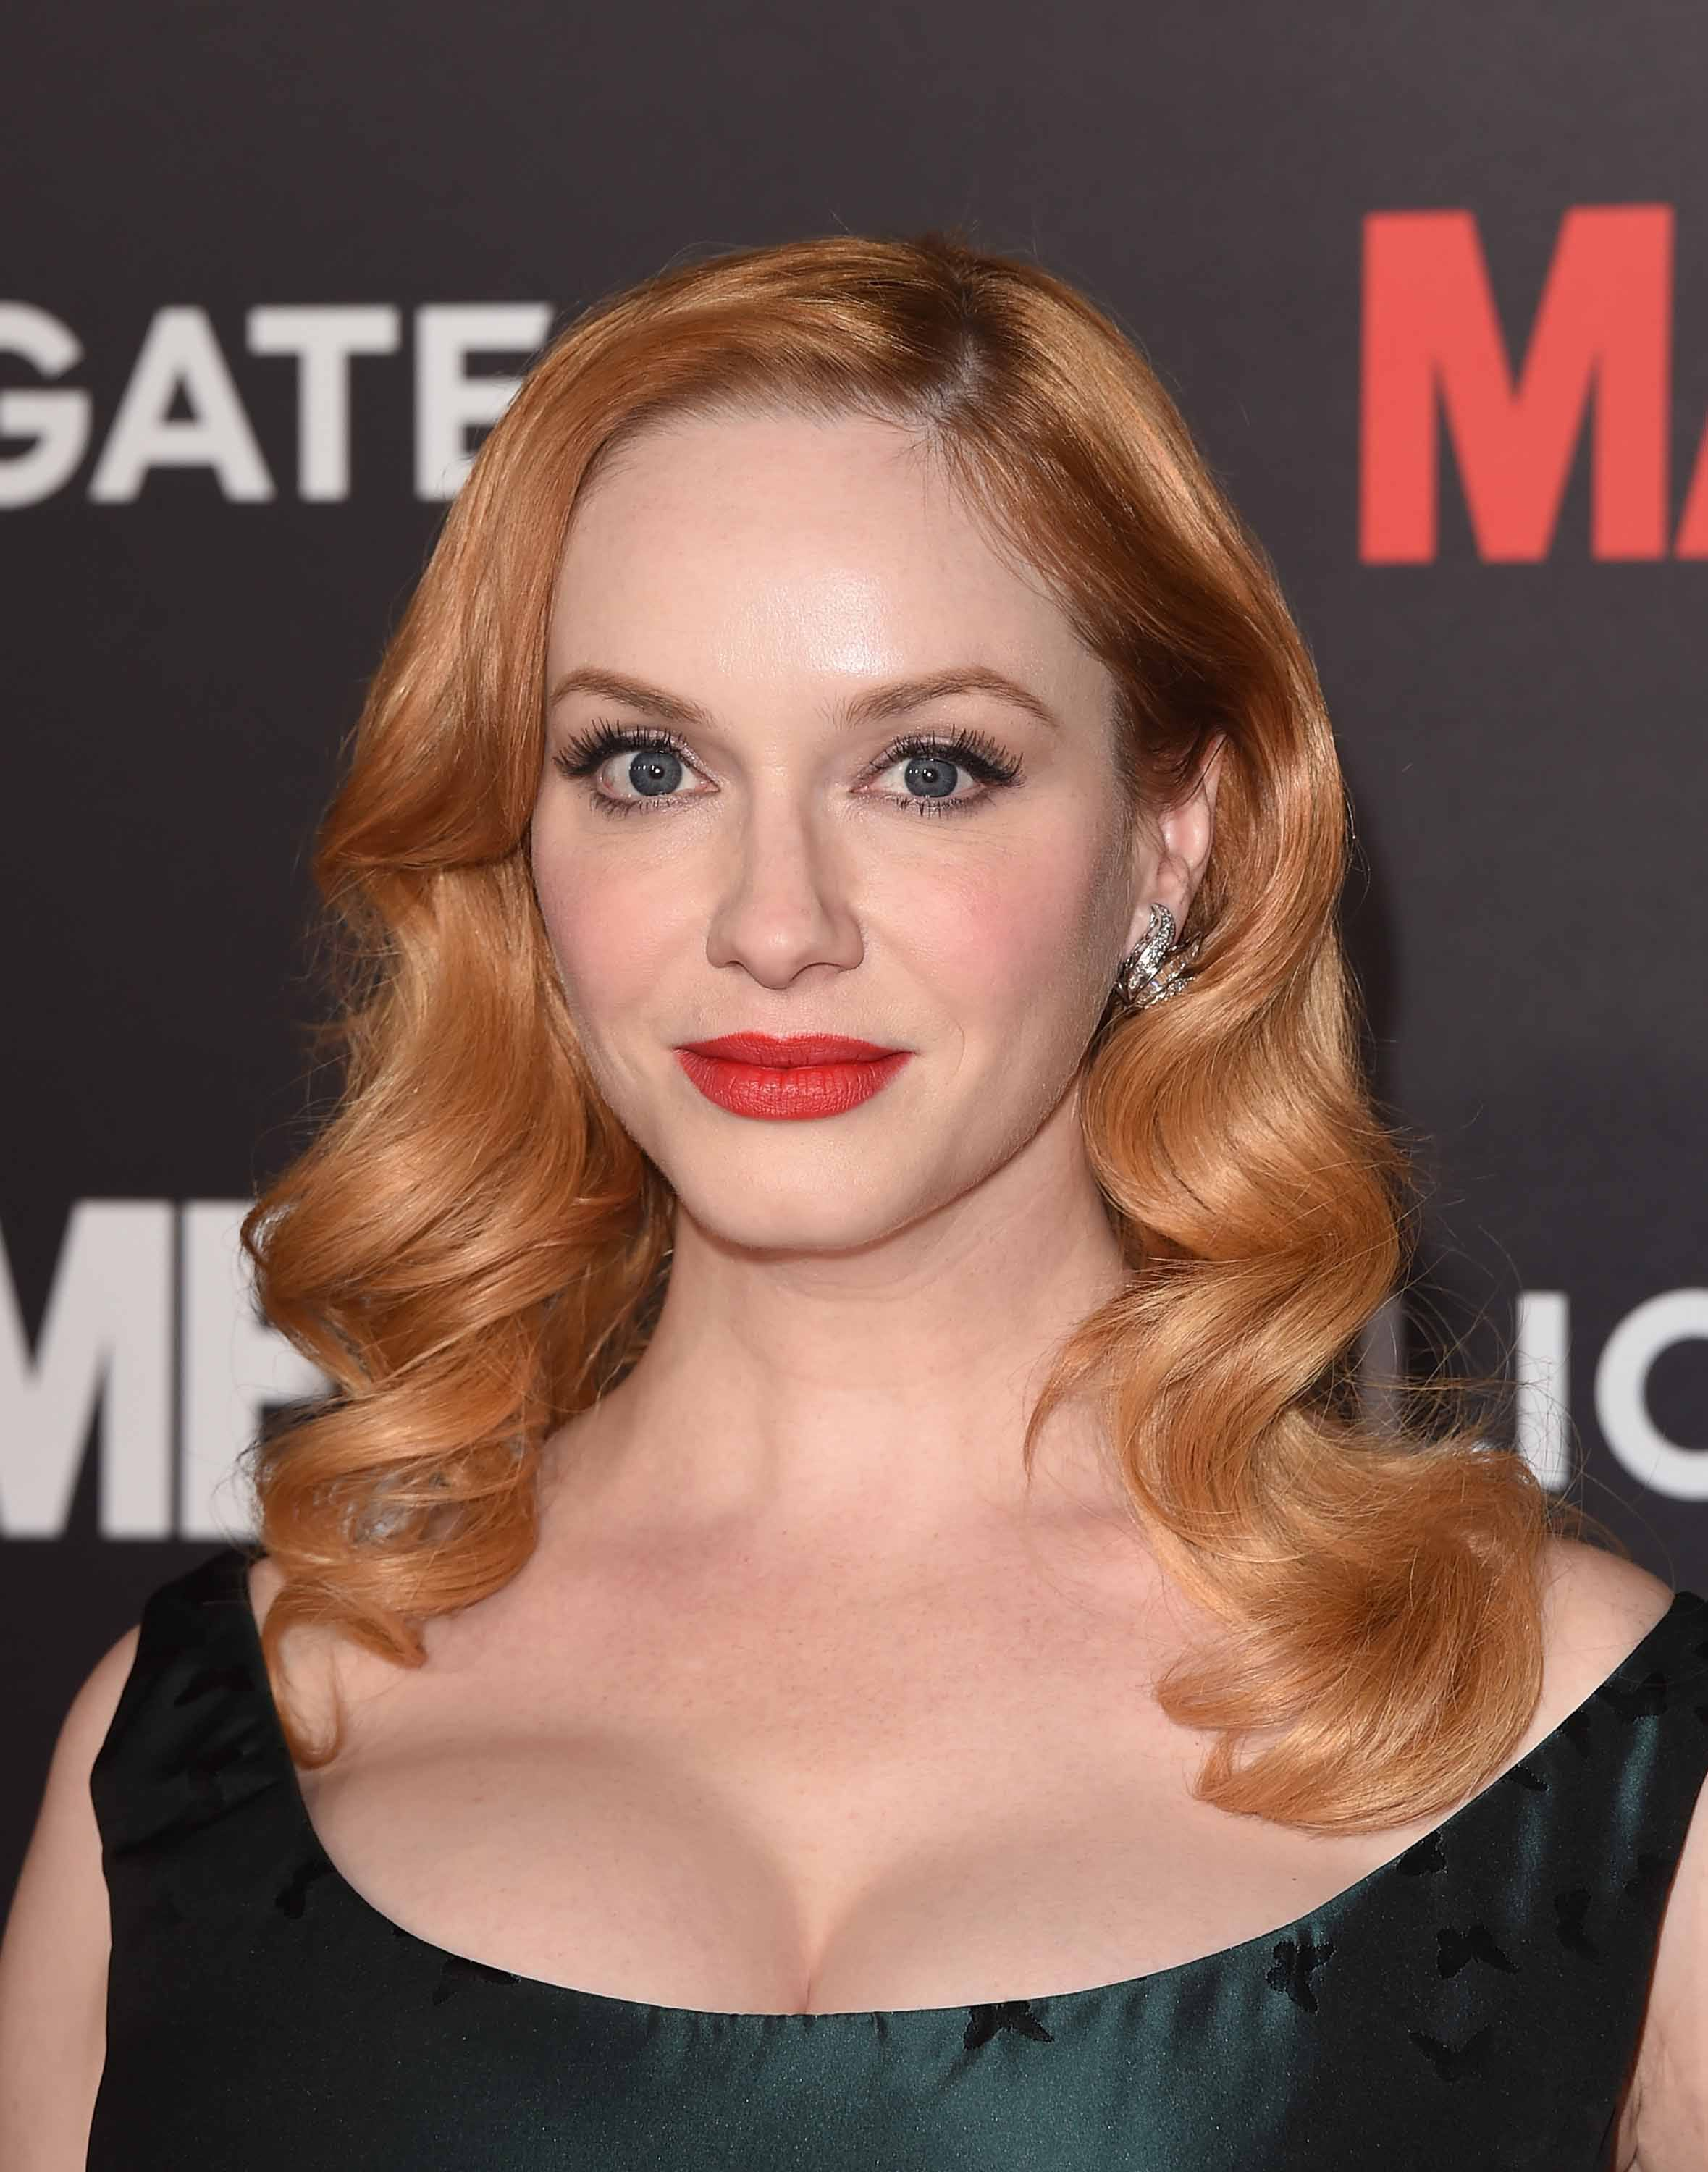 Famous redheads: All Things Hair - IMAGE - Christina Hendricks rose gold wavy hair